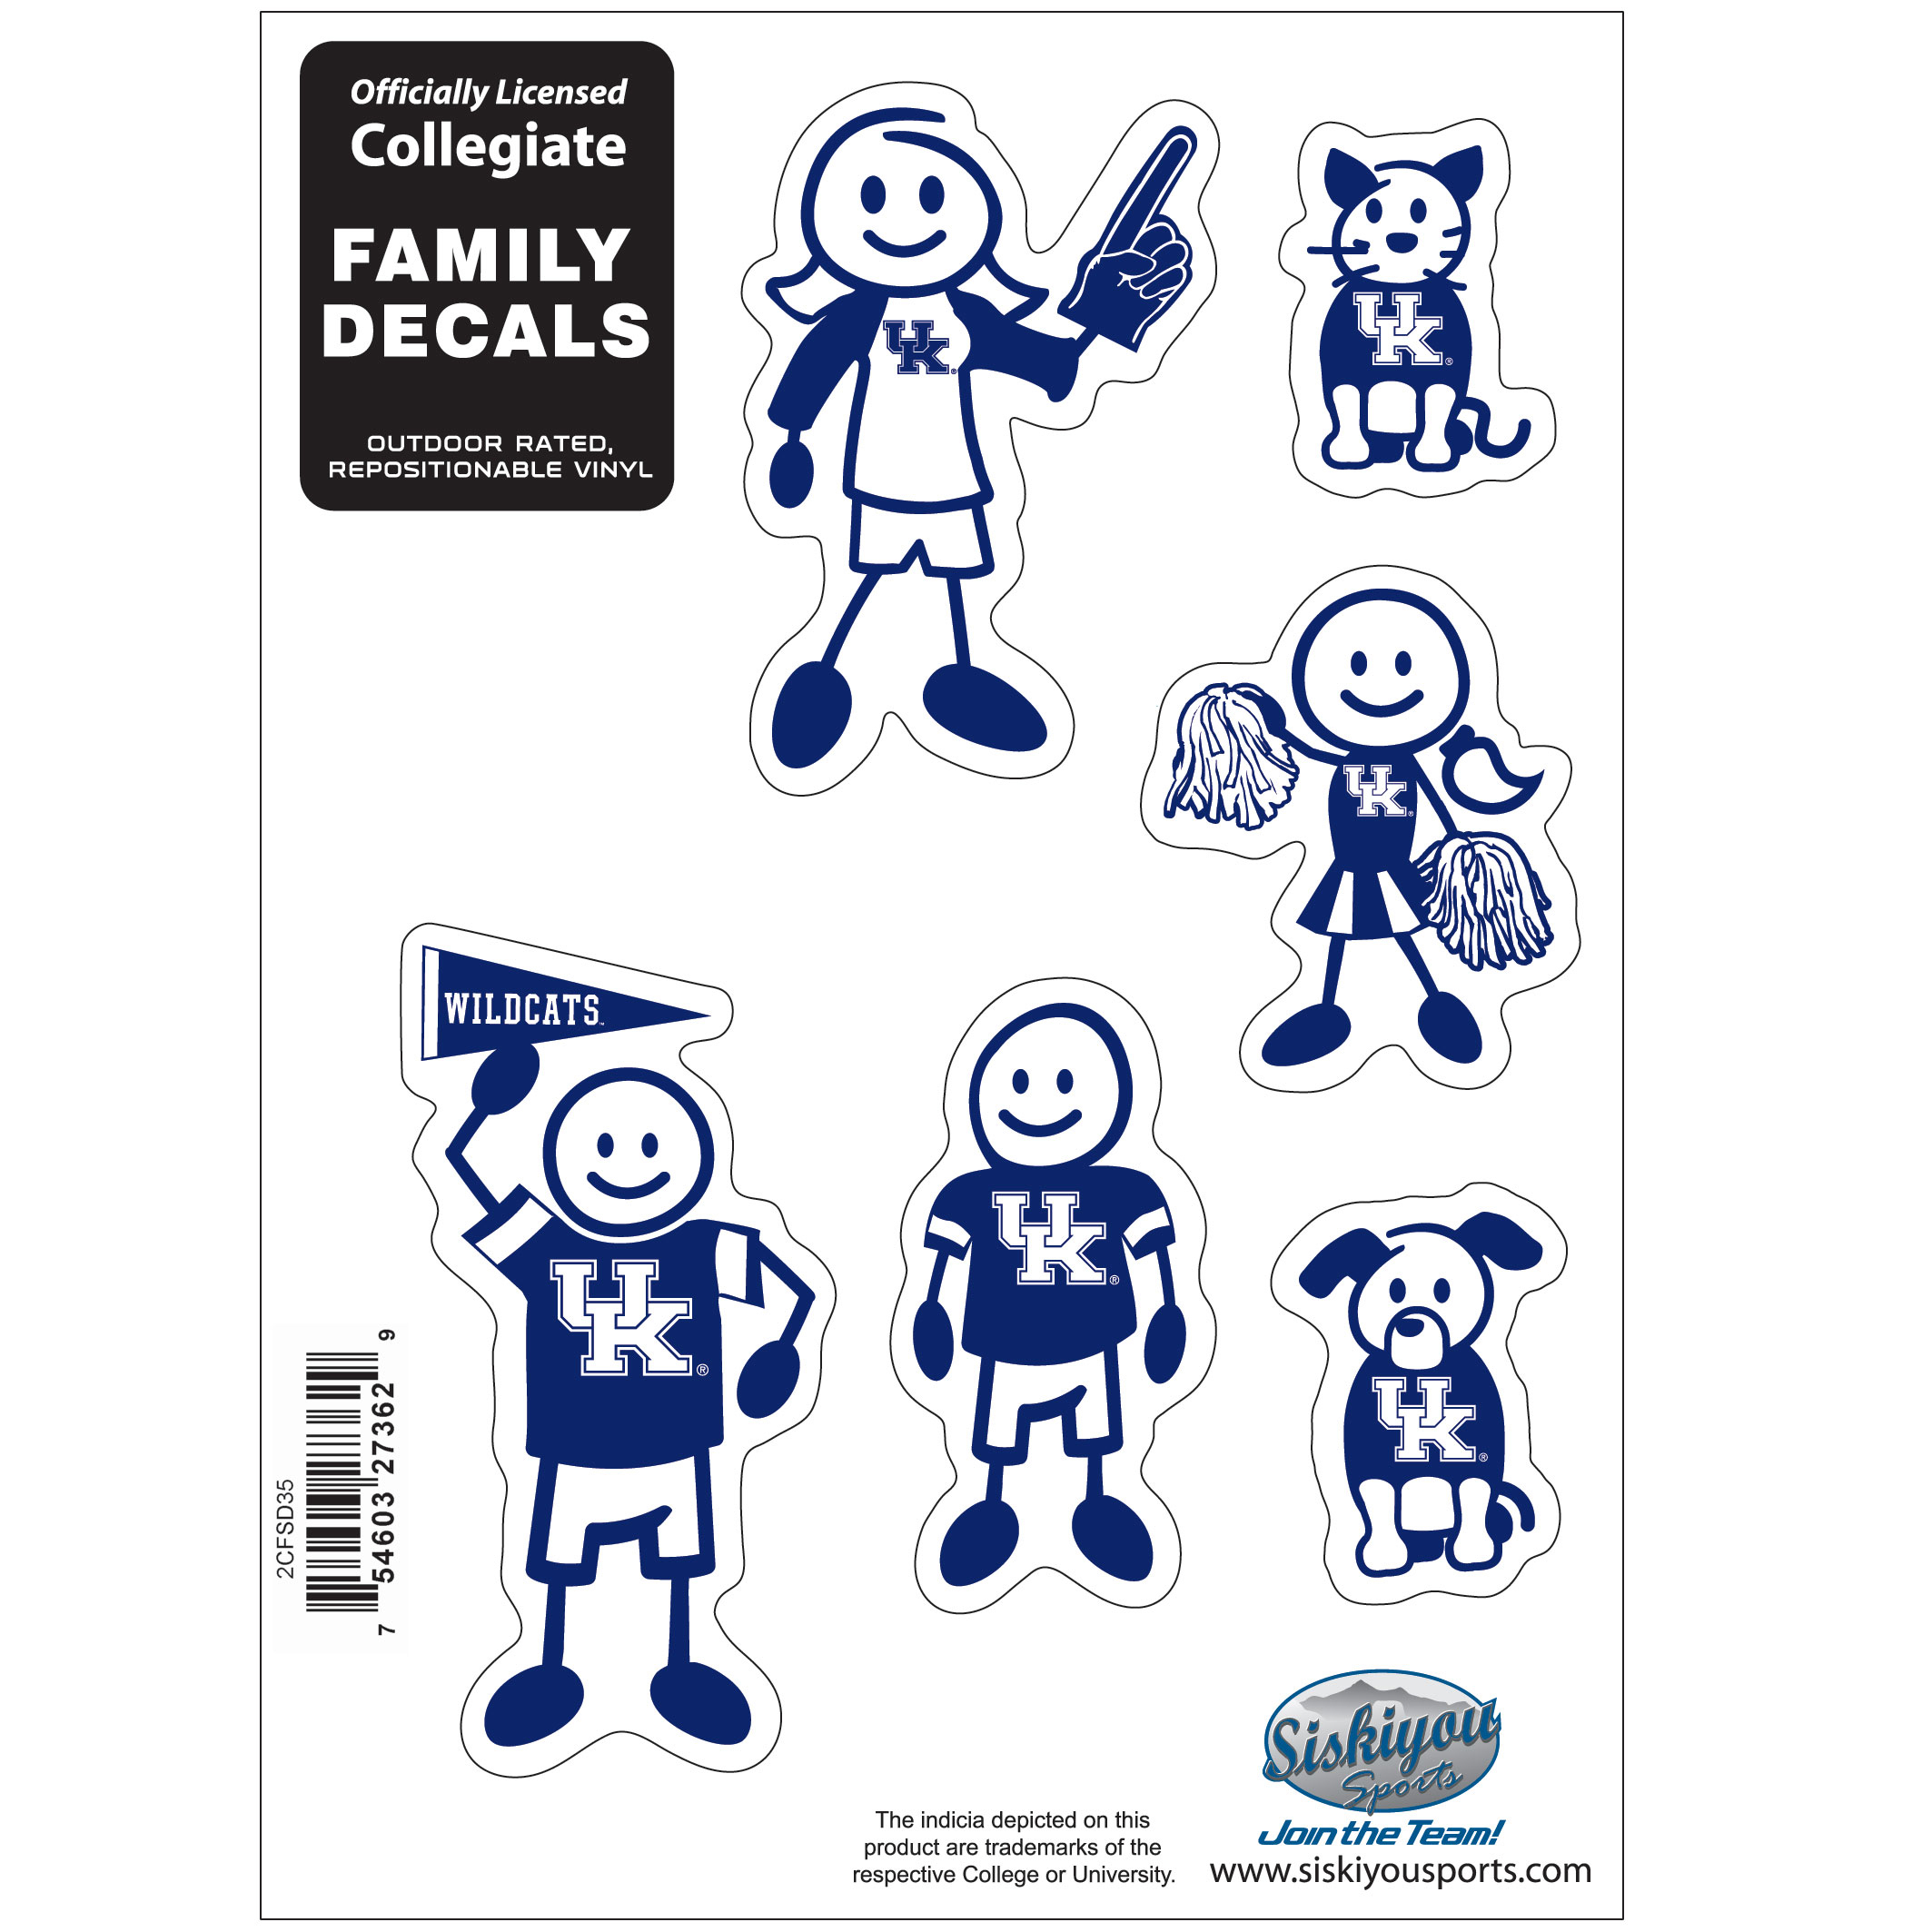 Kentucky Wildcats Family Decal Set Small - Show off your team pride with our Kentucky Wildcats family automotive decals. The set includes 6 individual family themed decals that each feature the team logo. The 5 x 7 inch decal set is made of outdoor rated, repositionable vinyl for durability and easy application.